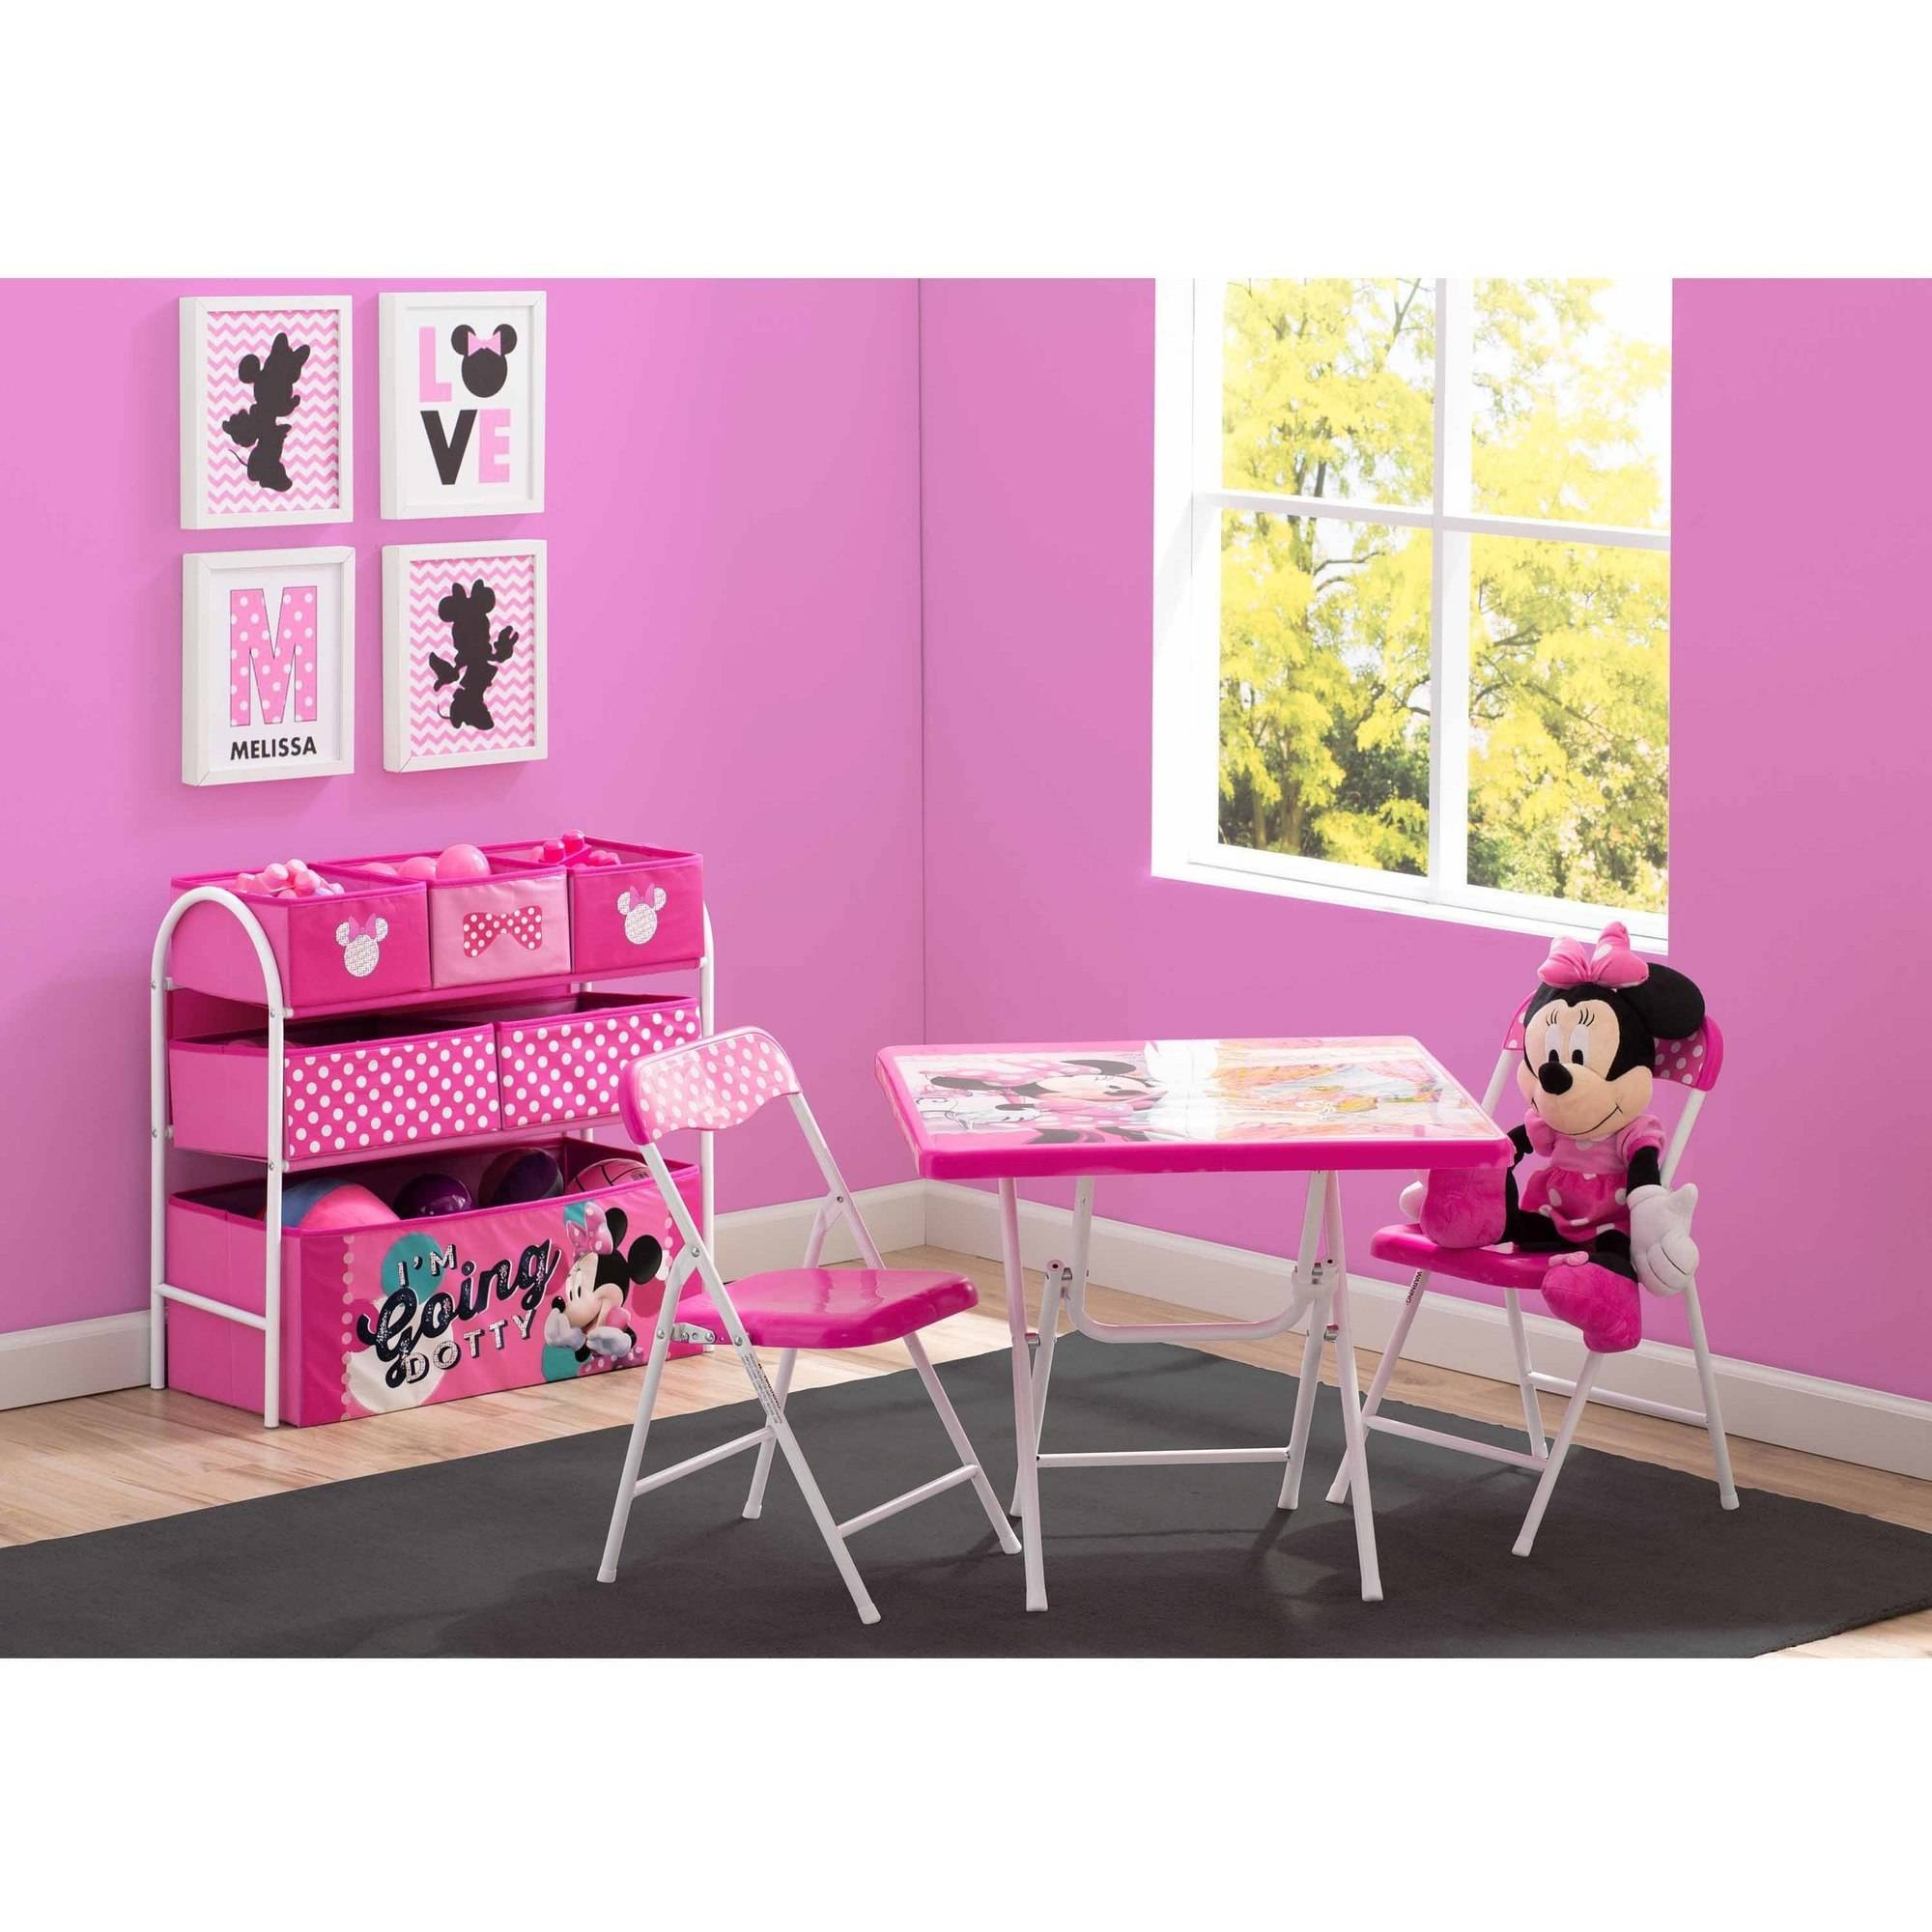 Storage Organizer Toy Box Disney Frozen Playroom Bedroom: Disney Minnie Mouse Playroom Solution Furniture Table